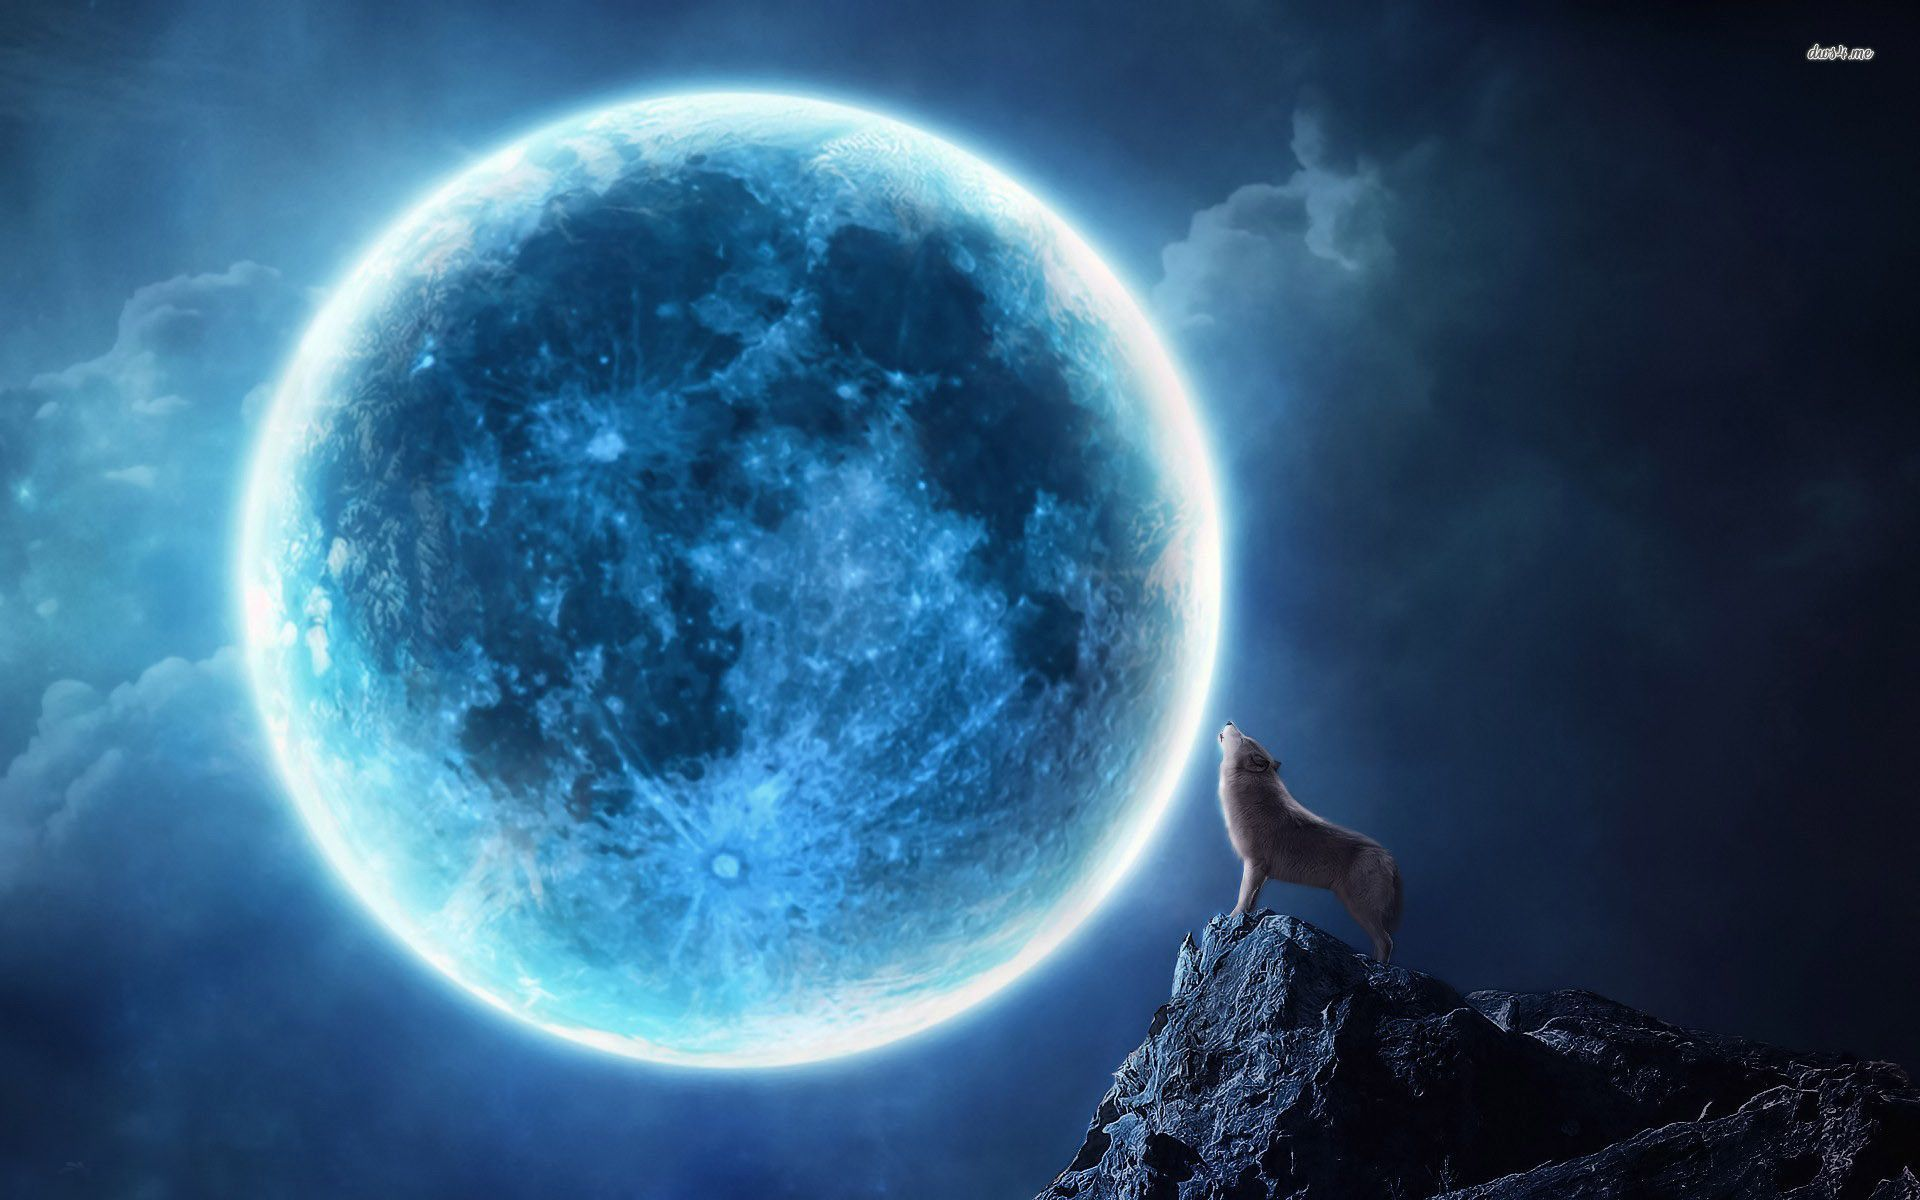 Blue Moon Wallpapers Top Free Blue Moon Backgrounds Wallpaperaccess